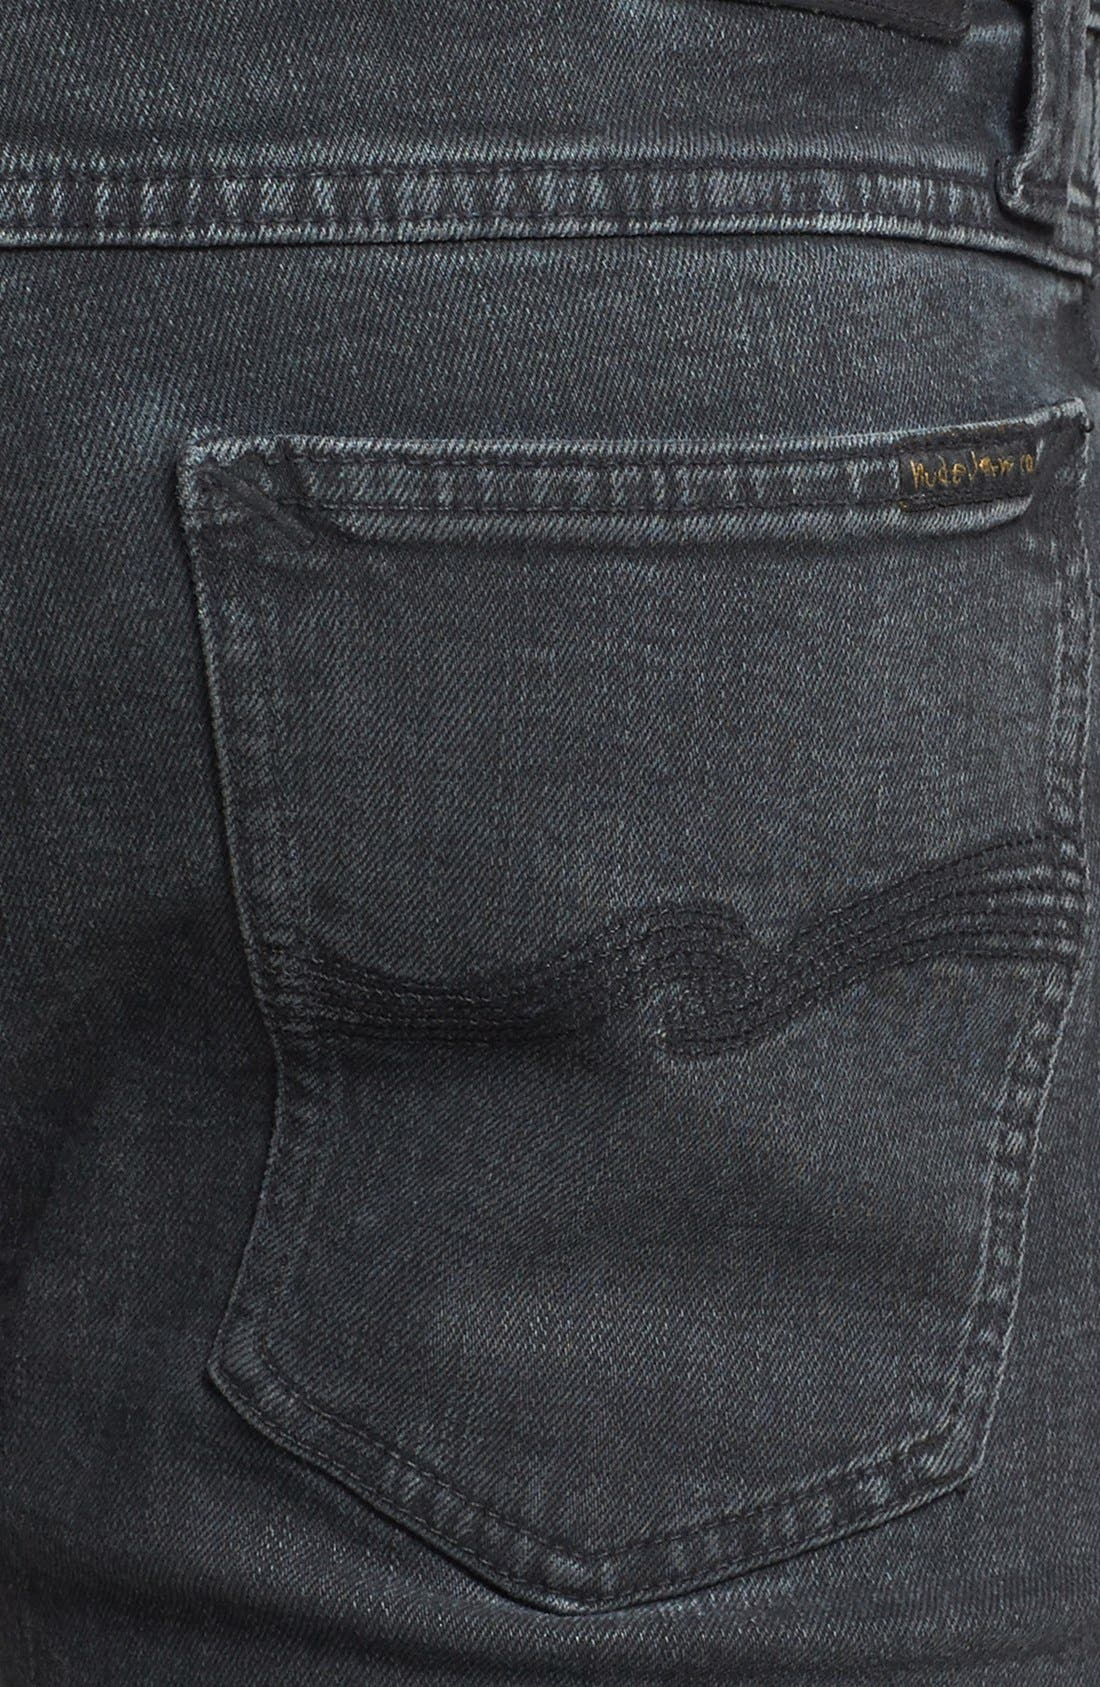 Alternate Image 4  - Nudie Jeans 'Tube Tom' Skinny Fit Jeans (Organic Painted Black)